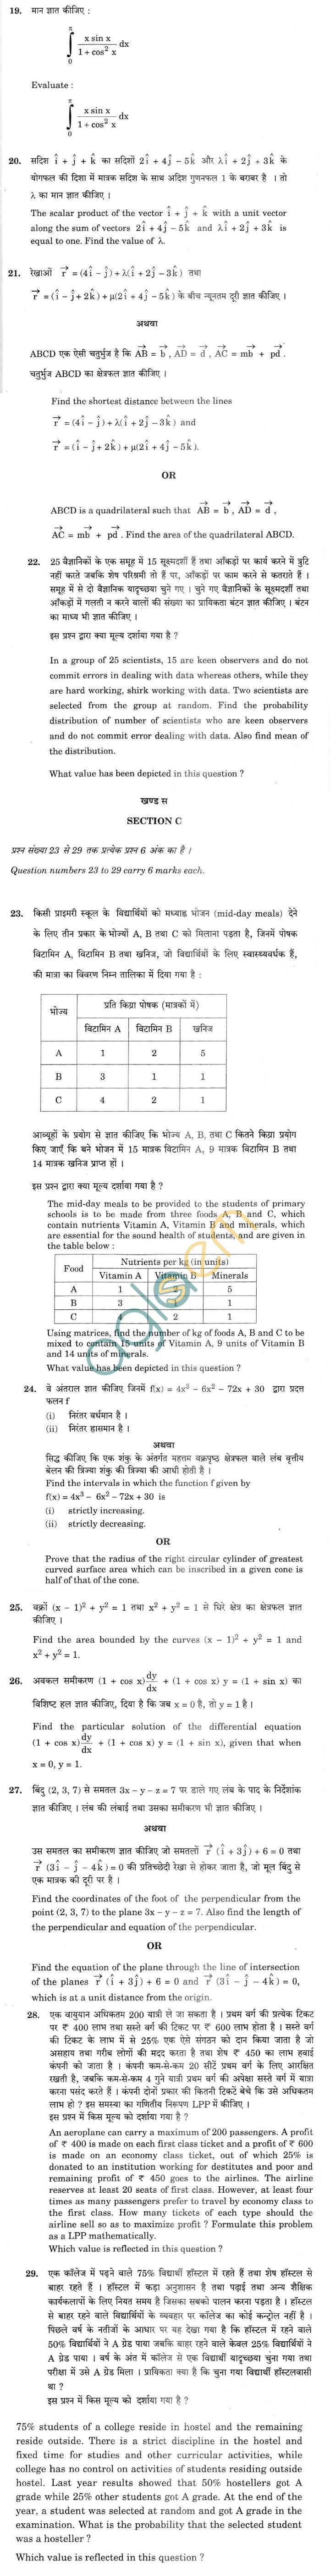 CBSE Compartment Exam 2013 Class XII Question Paper - Mathematics for Blind Candidates